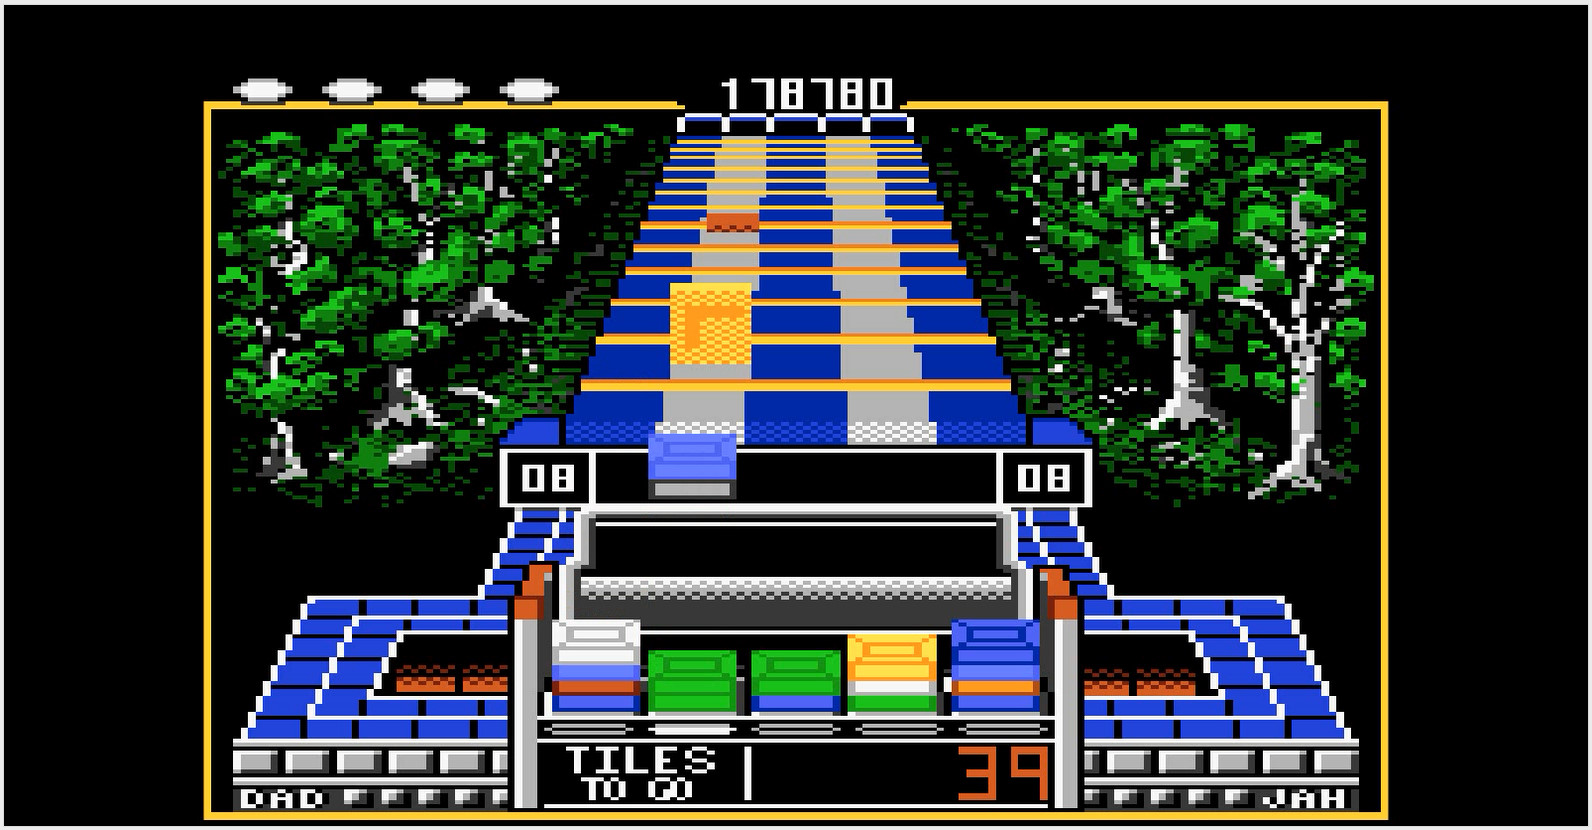 Klax: Hard [Level 06 Start] 178,780 points